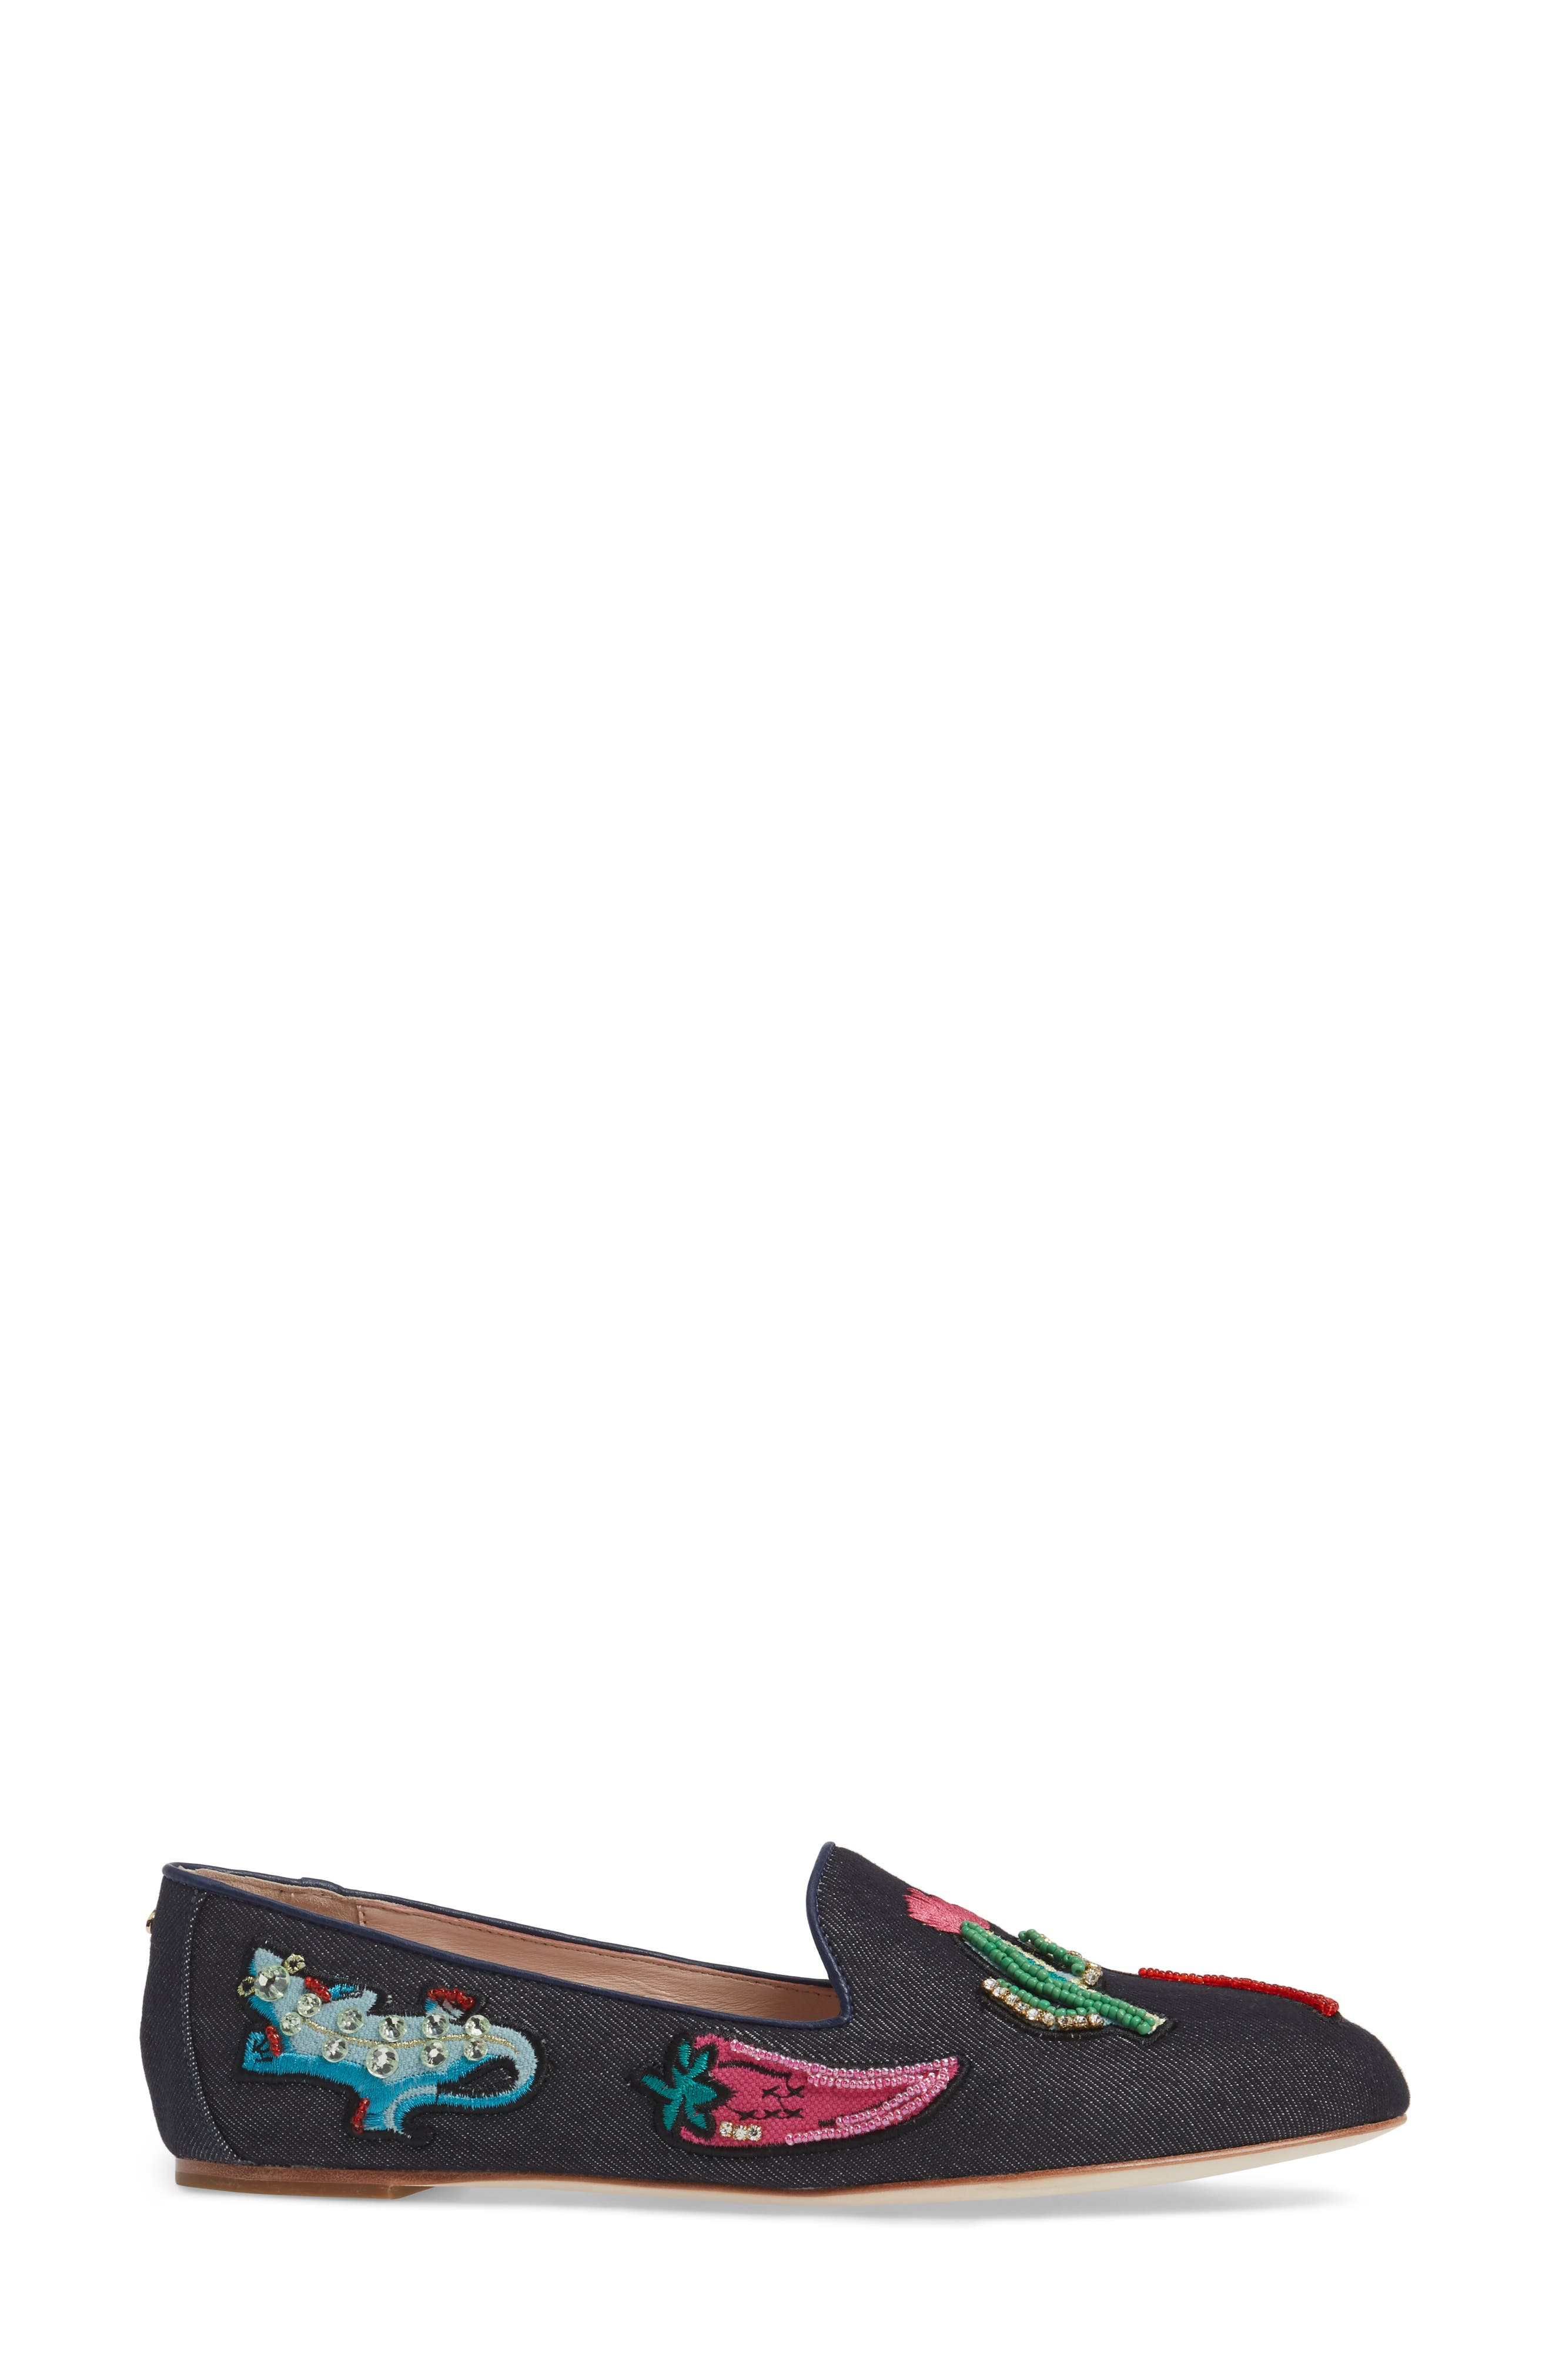 saville embroidered loafer,                             Alternate thumbnail 3, color,                             489